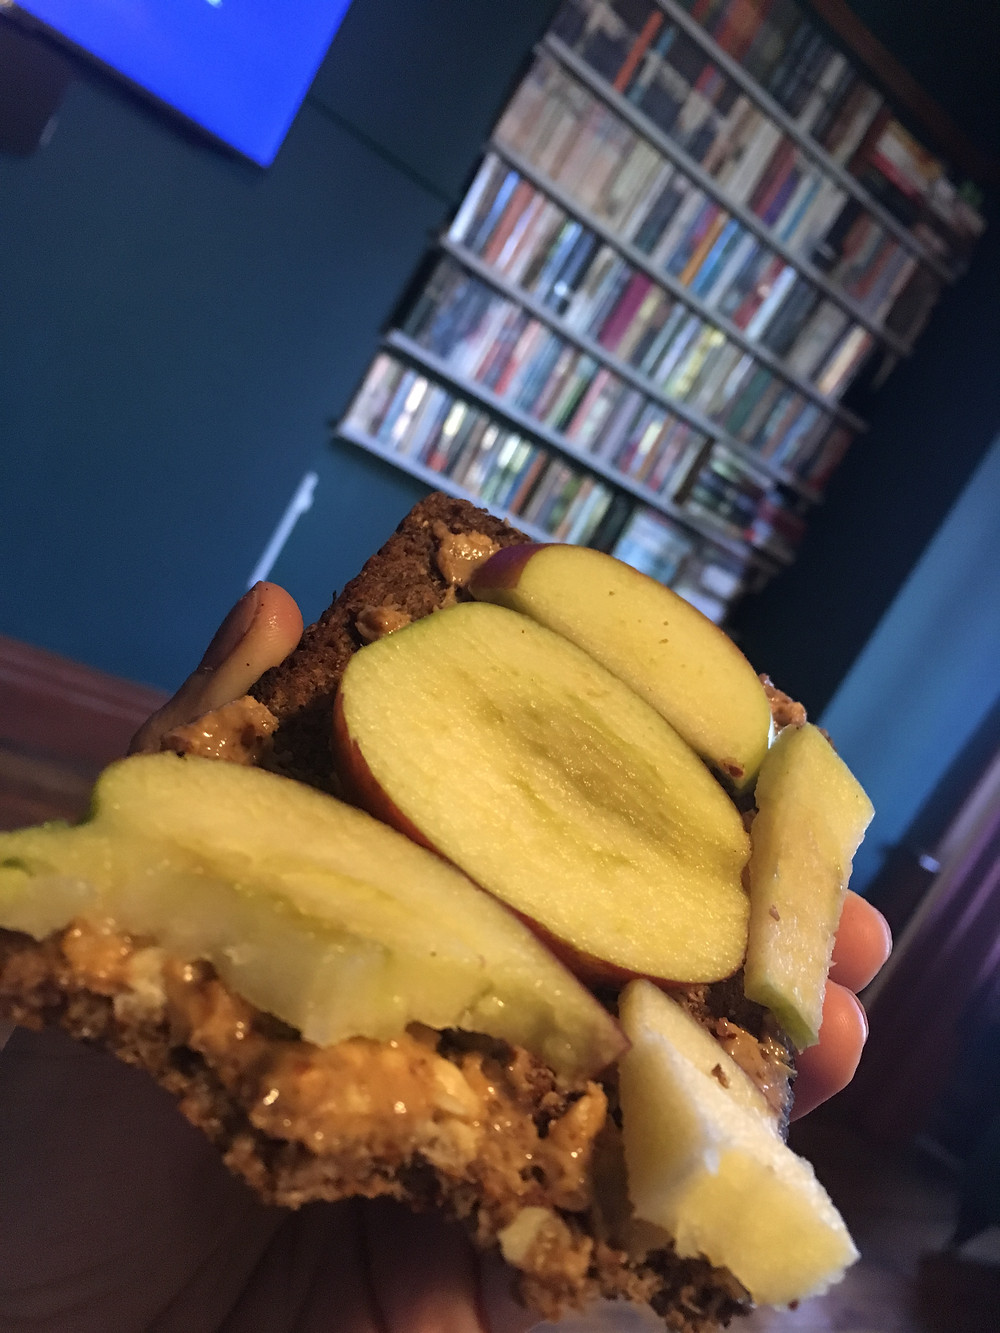 Peanut butter and apple on rye bread